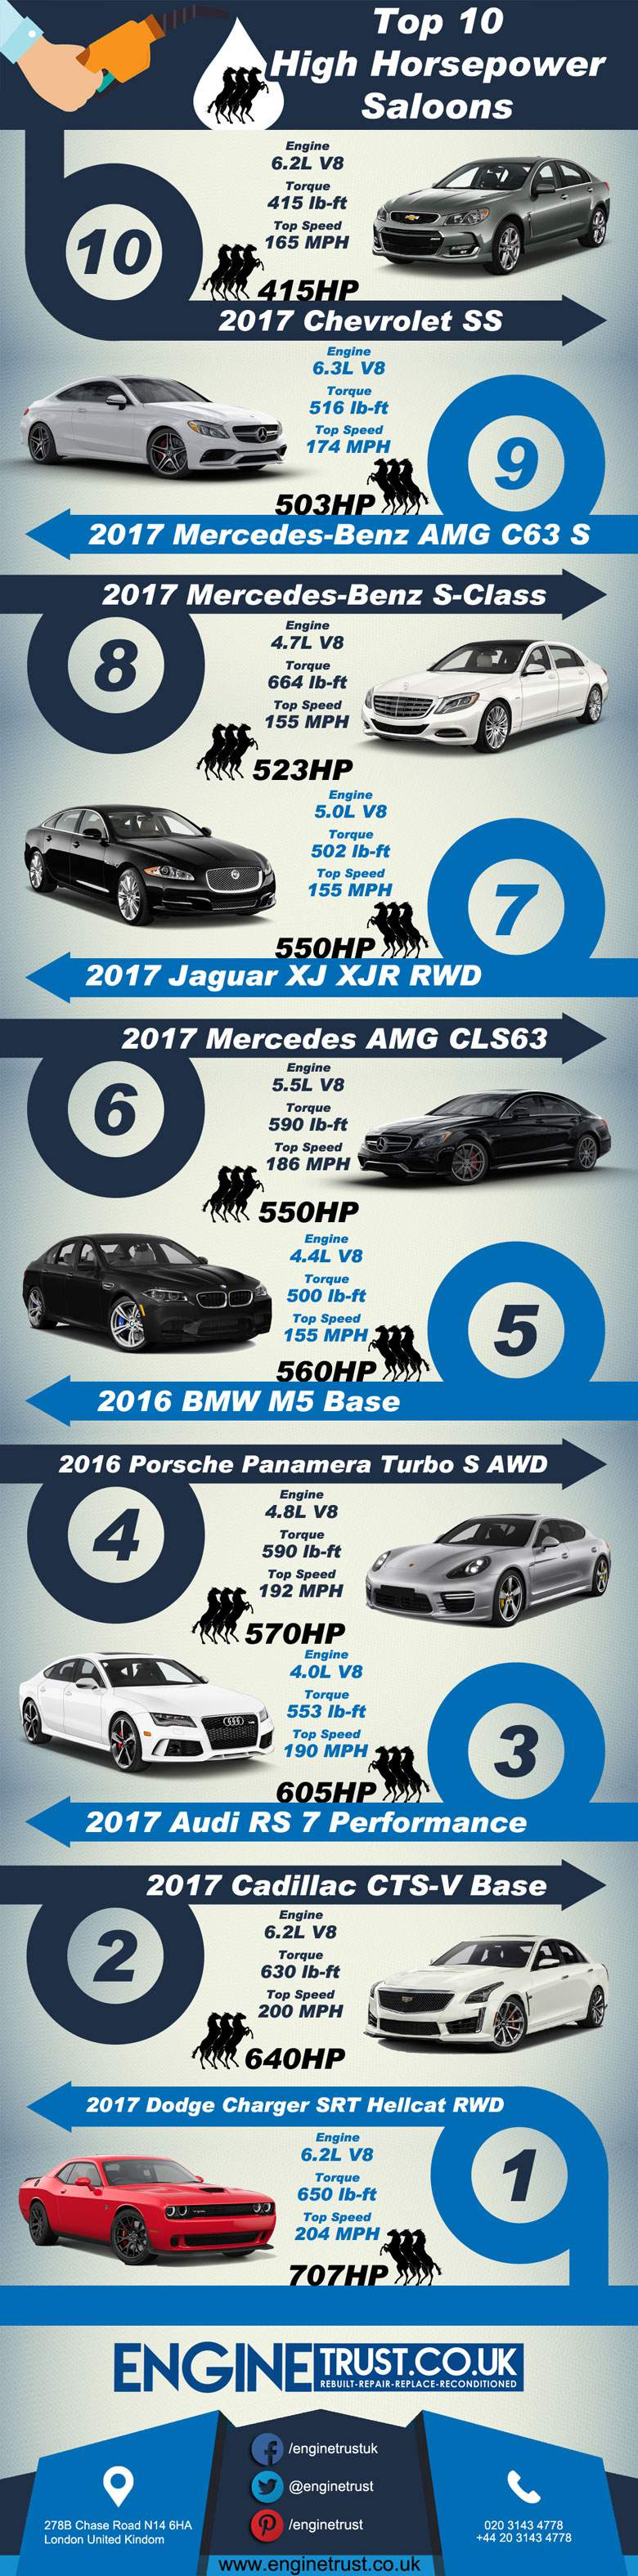 Top 10 Saloons with High Horsepower Engines – Infographic Portal